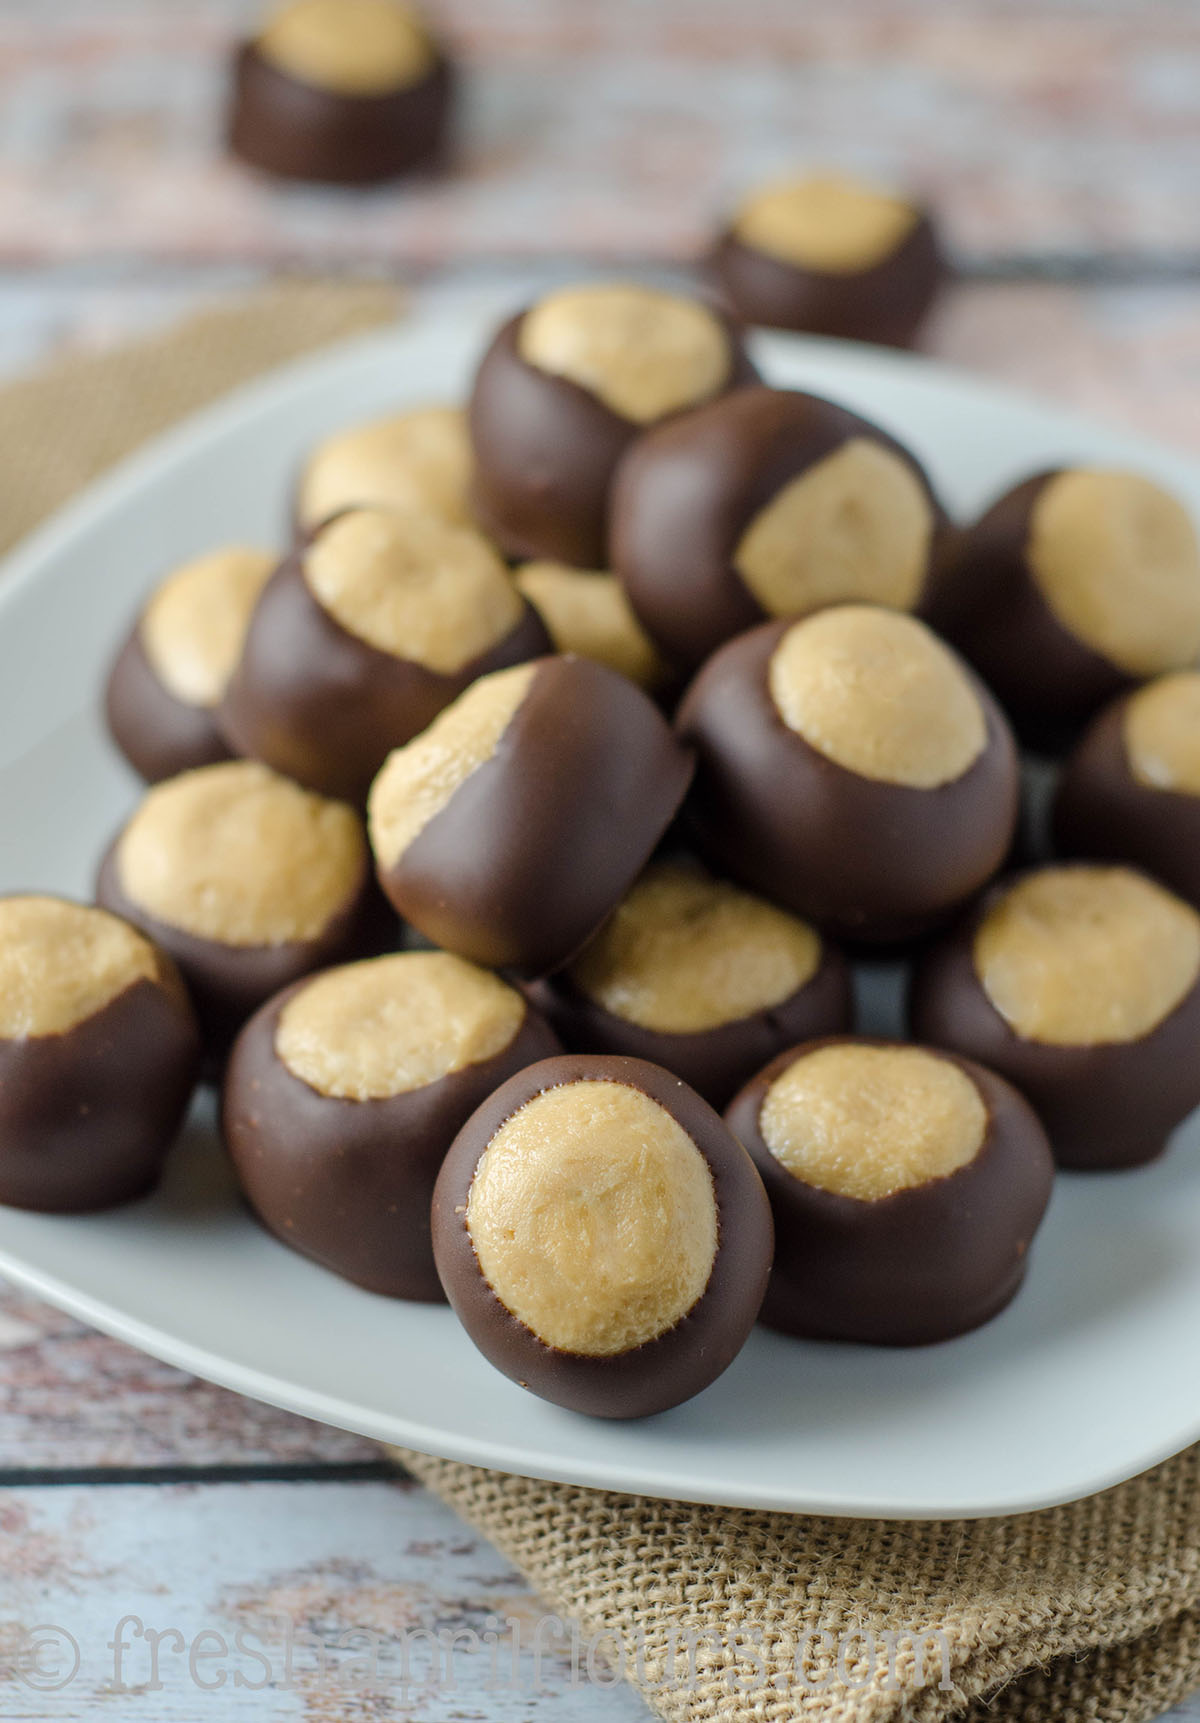 How to Make Buckeyes